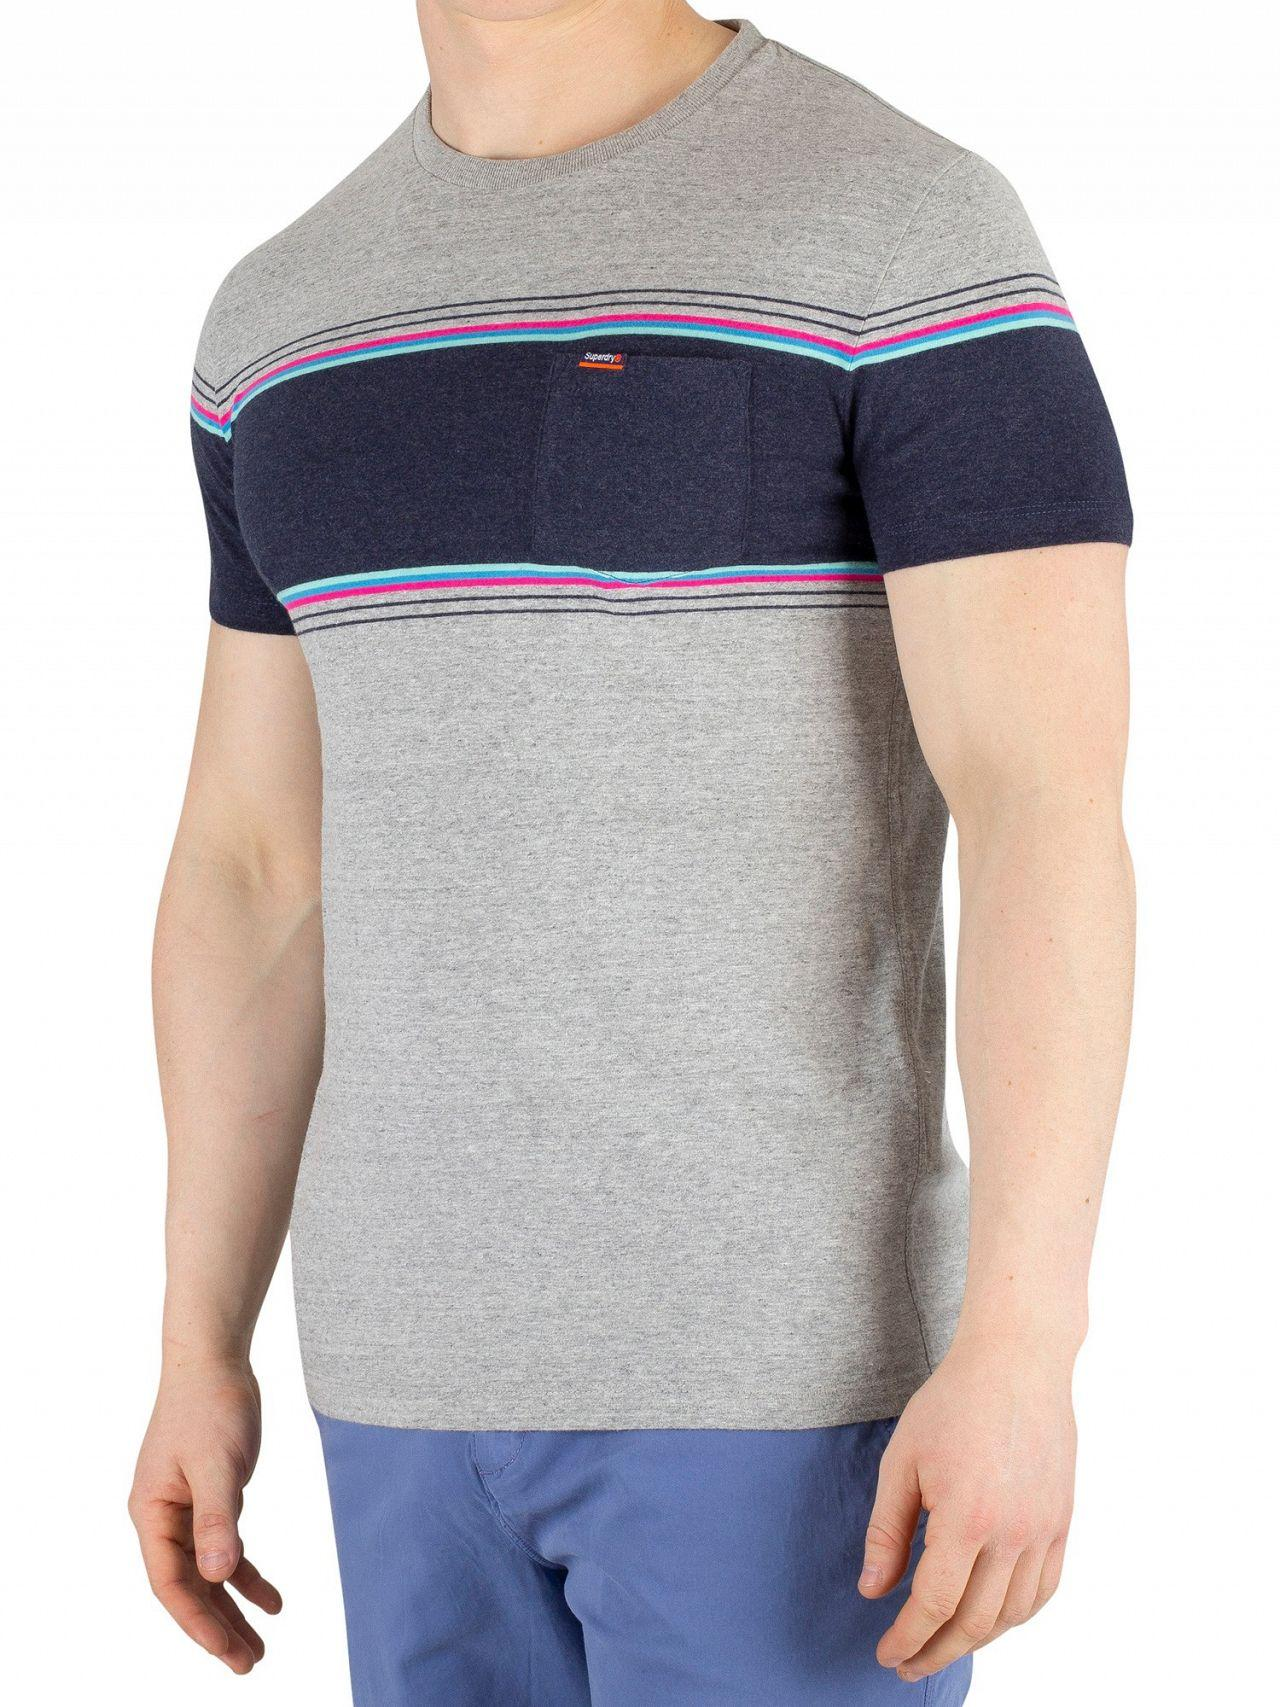 593e62a2 Superdry. Men's Mid Cali Gray Grit Orange Label Chestband Pocket T-shirt